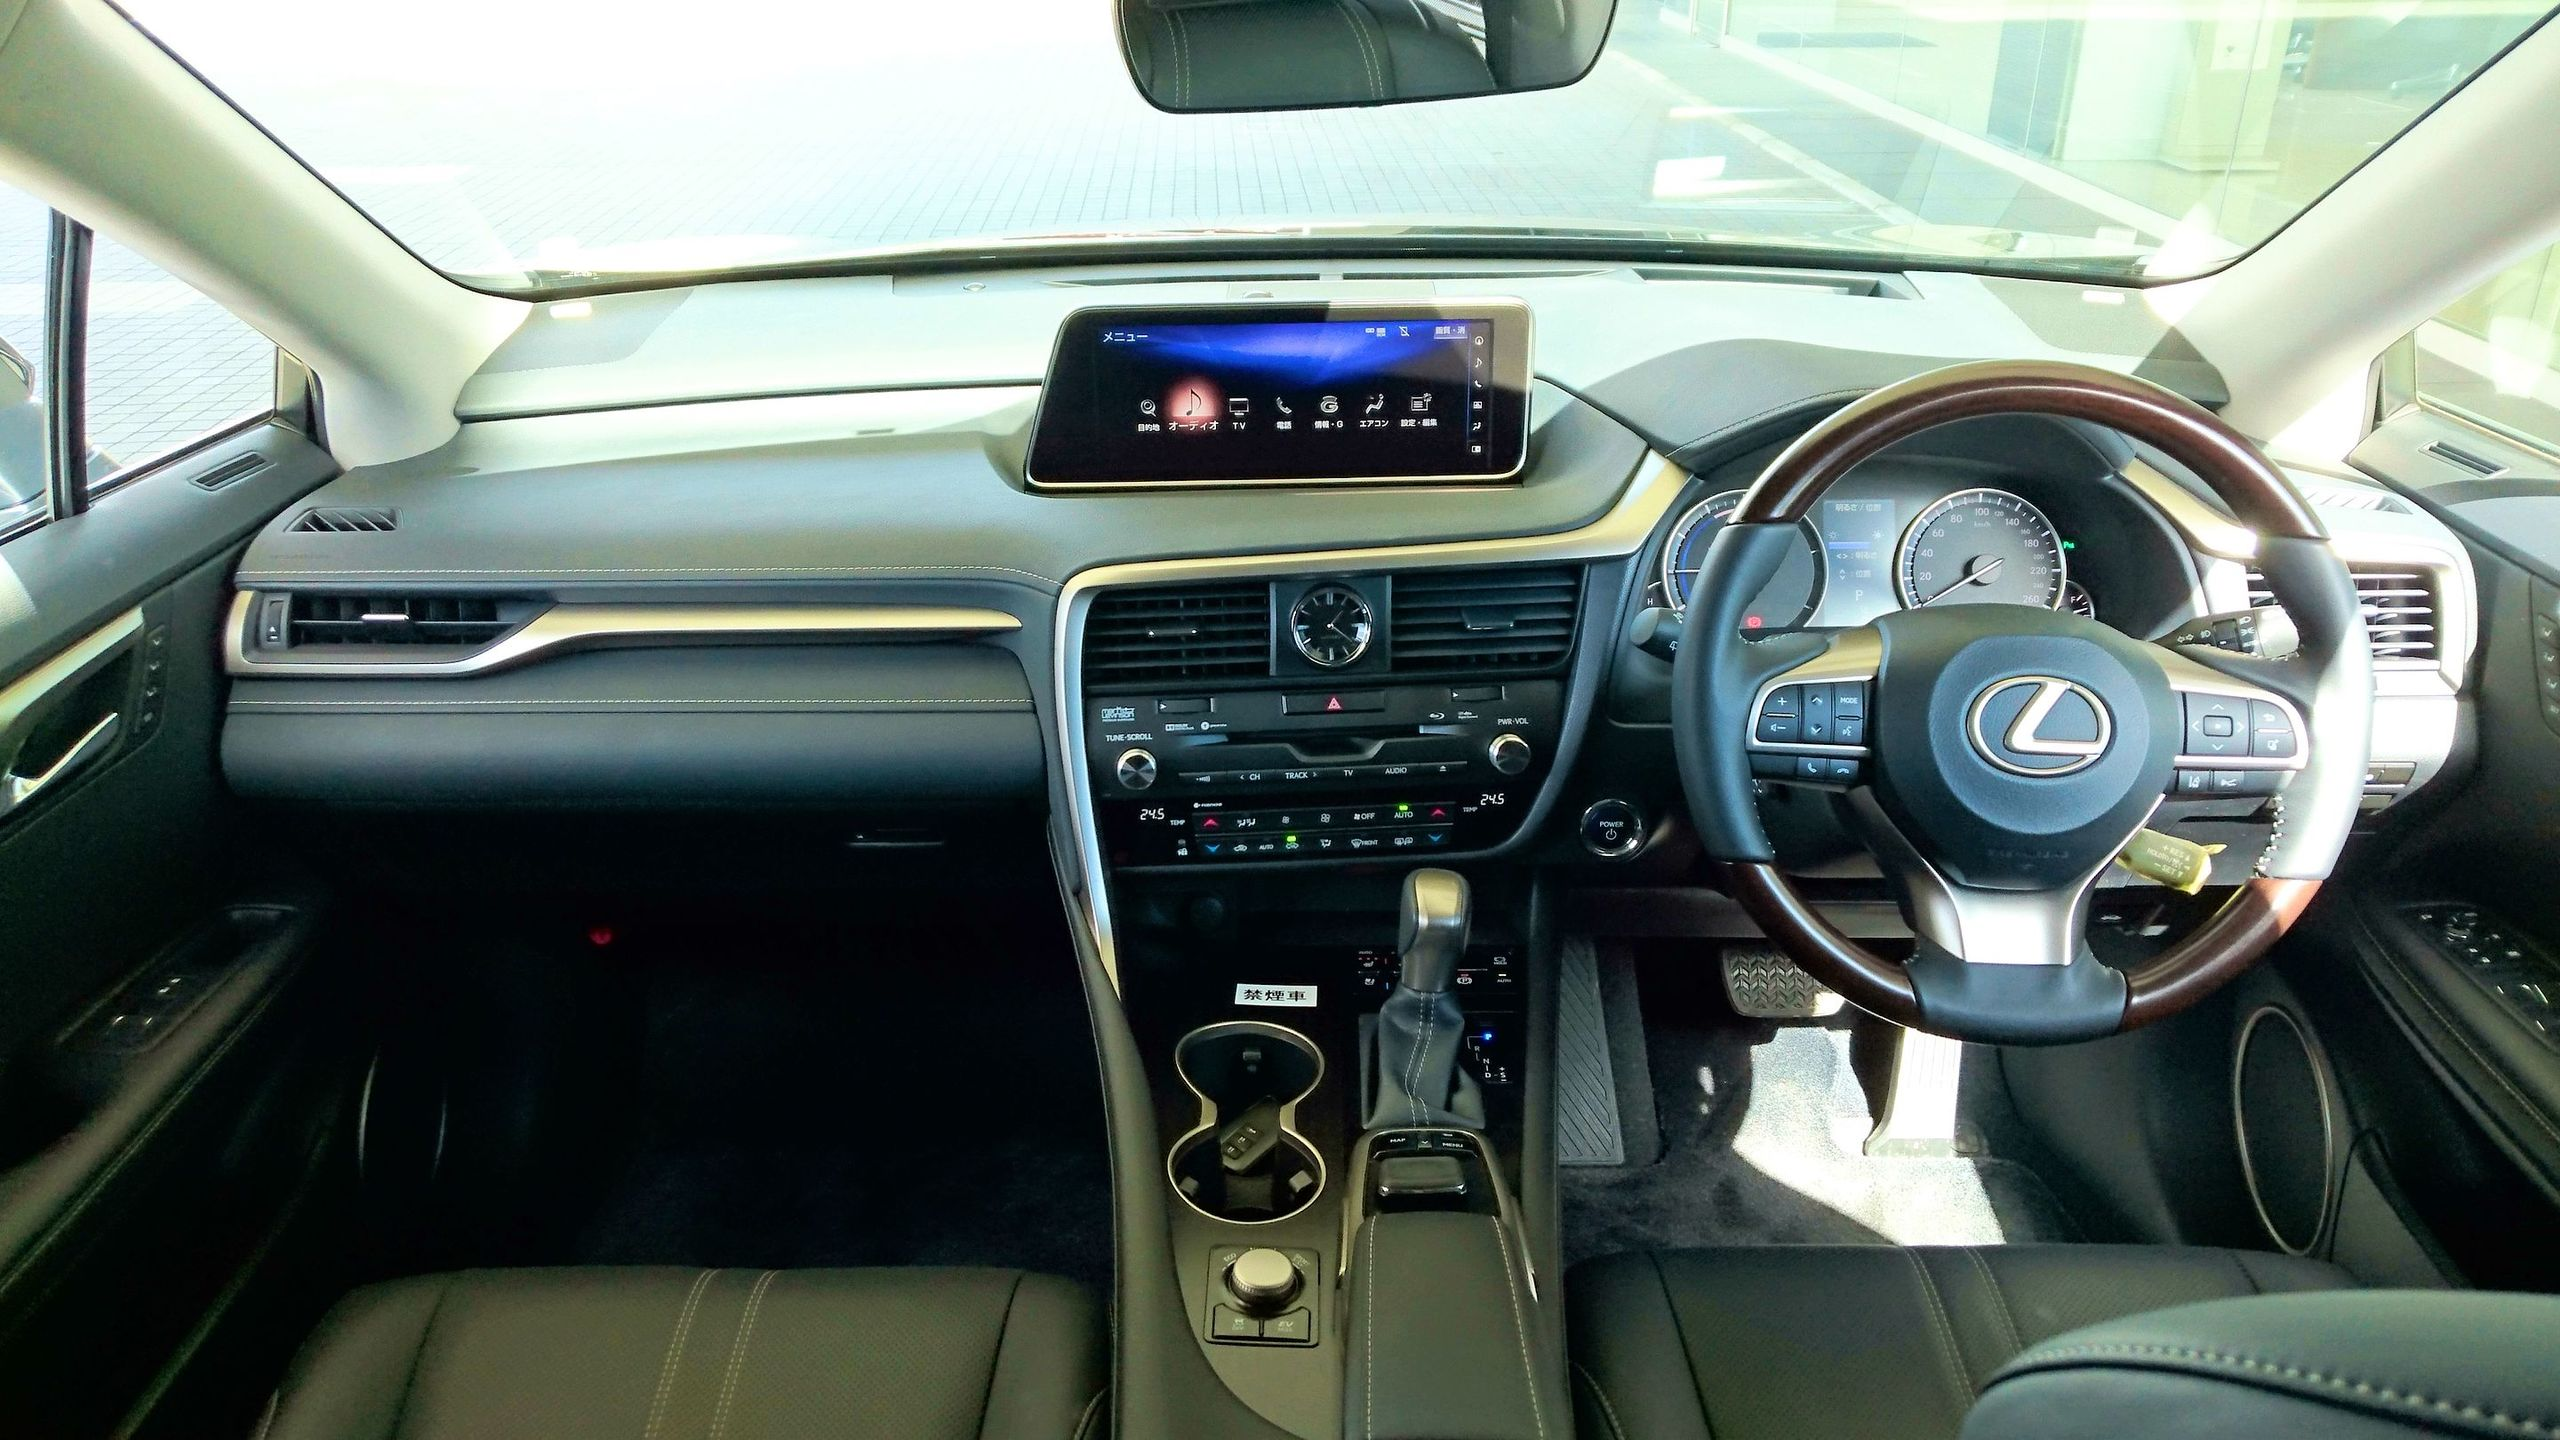 LEXUS RX450h 2016 JAPAN INTERIOR.JPG